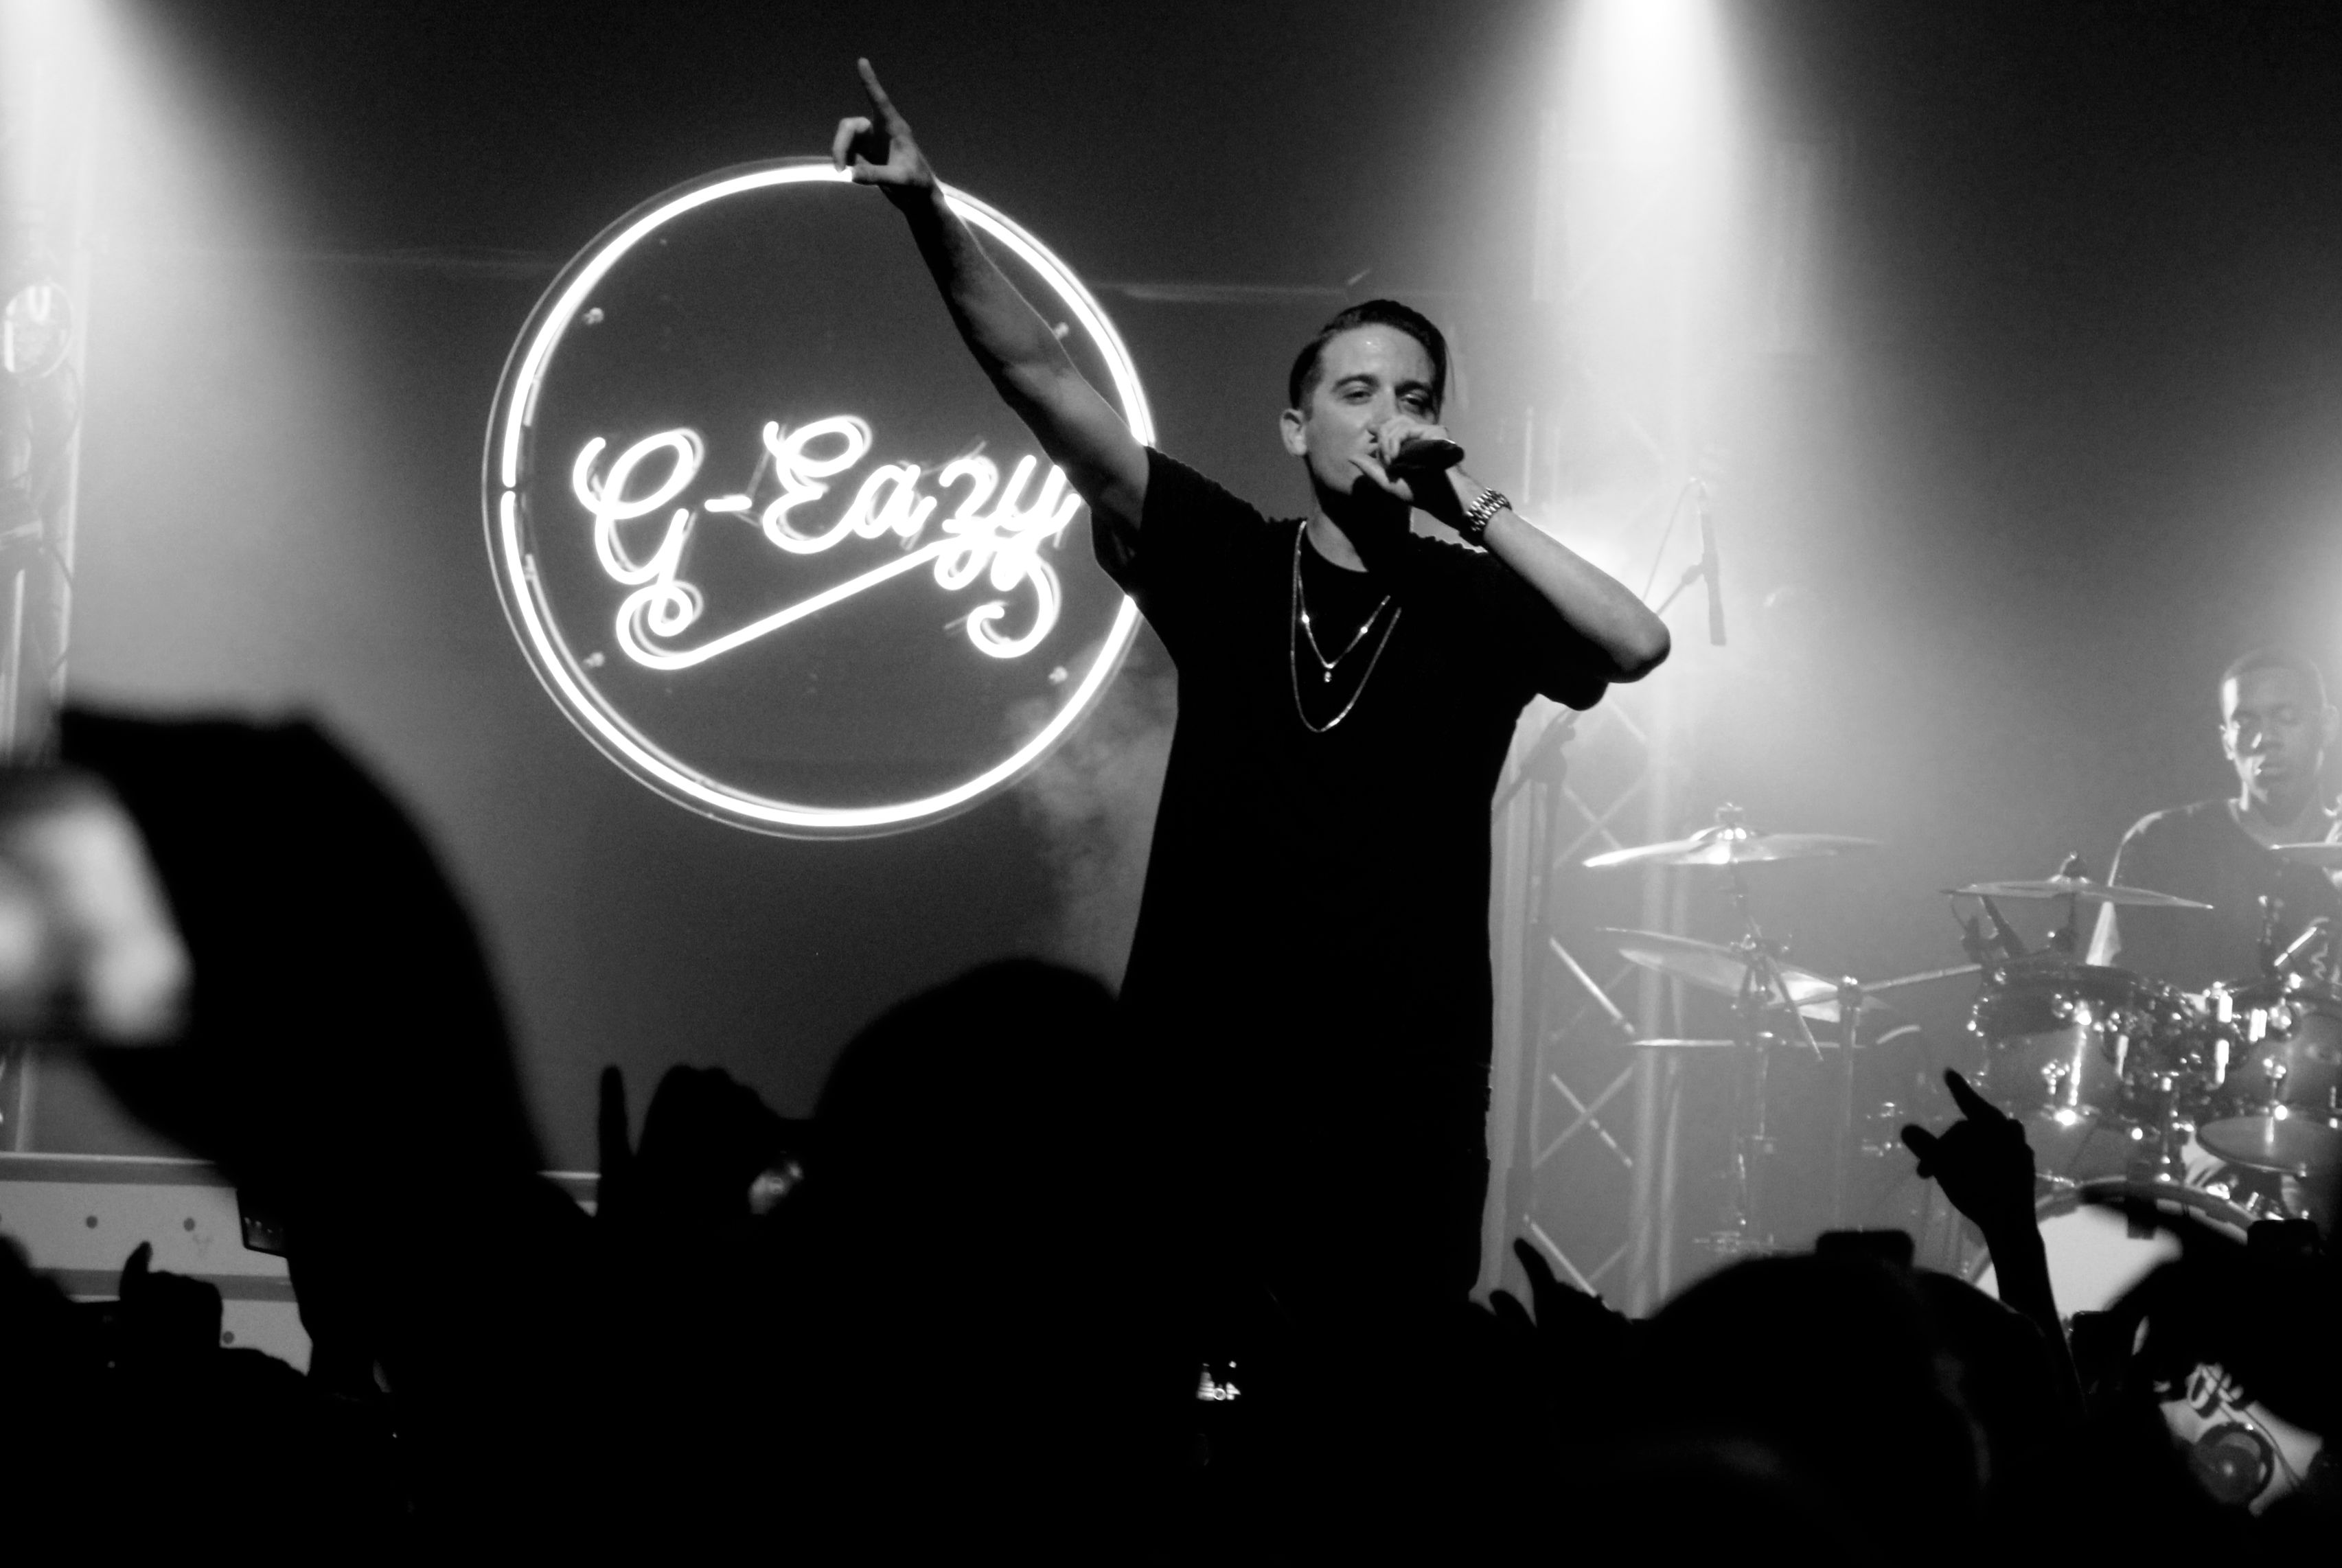 G Eazy God Full HD Wallpaper And Background Image